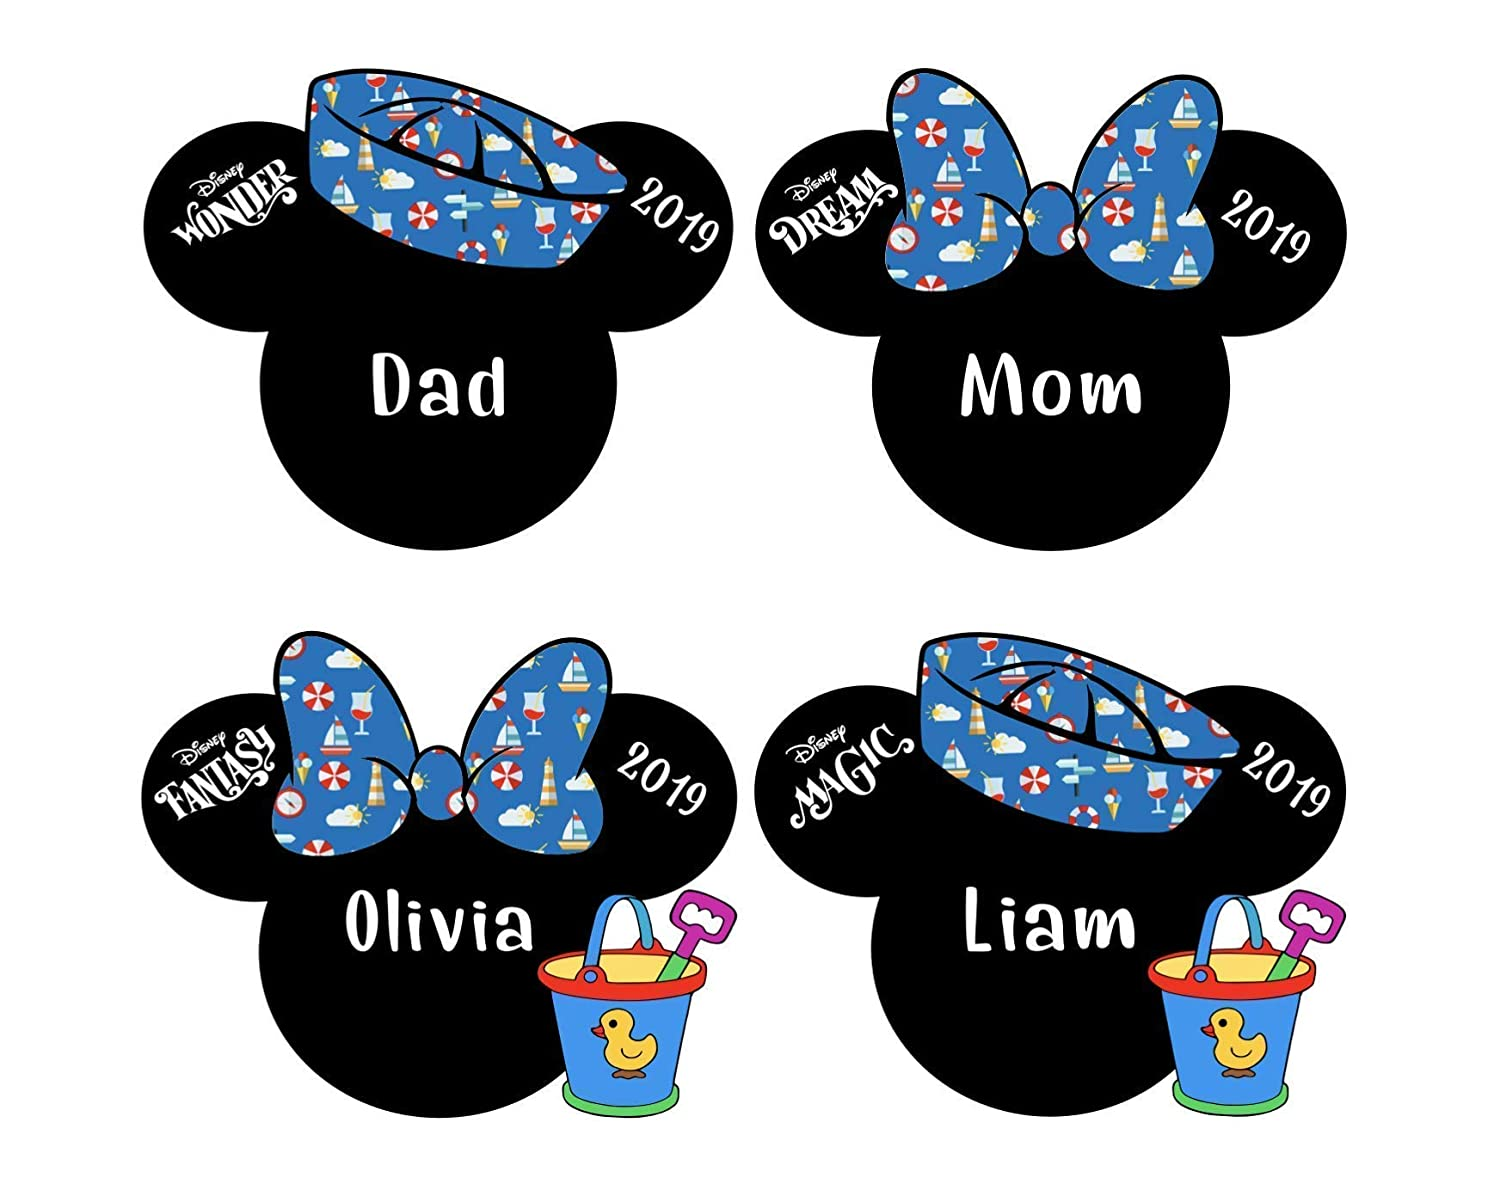 Mickey Mouse Tsum Tsum  Aladdin Disney Cruise Line Name Plate Tag Stateroom Door Magnet  buy 3 get1free New Thicker Magnets